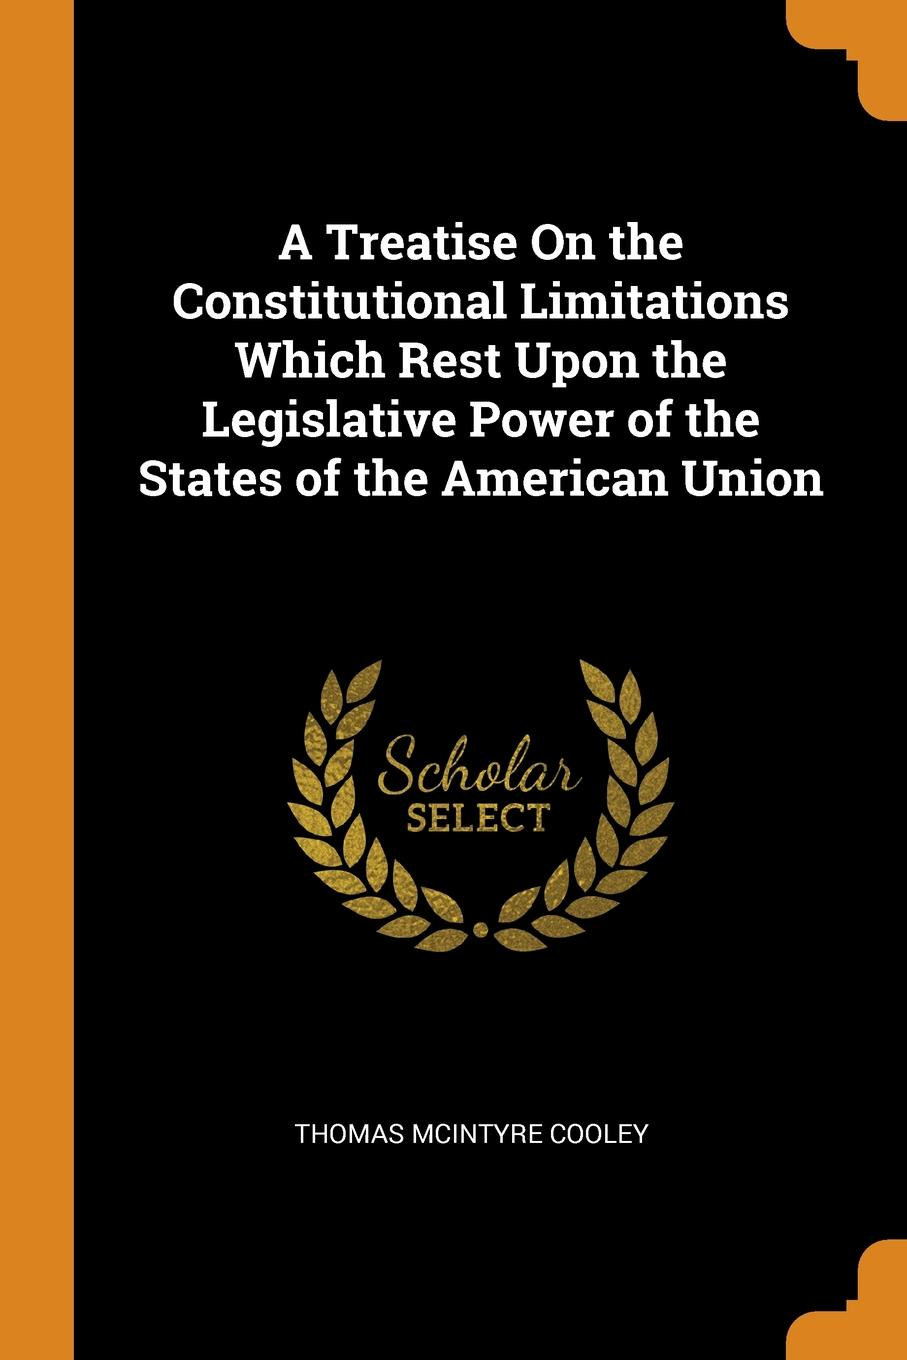 A Treatise On the Constitutional Limitations Which Rest Upon the Legislative Power of the States of the American Union. Thomas McIntyre Cooley